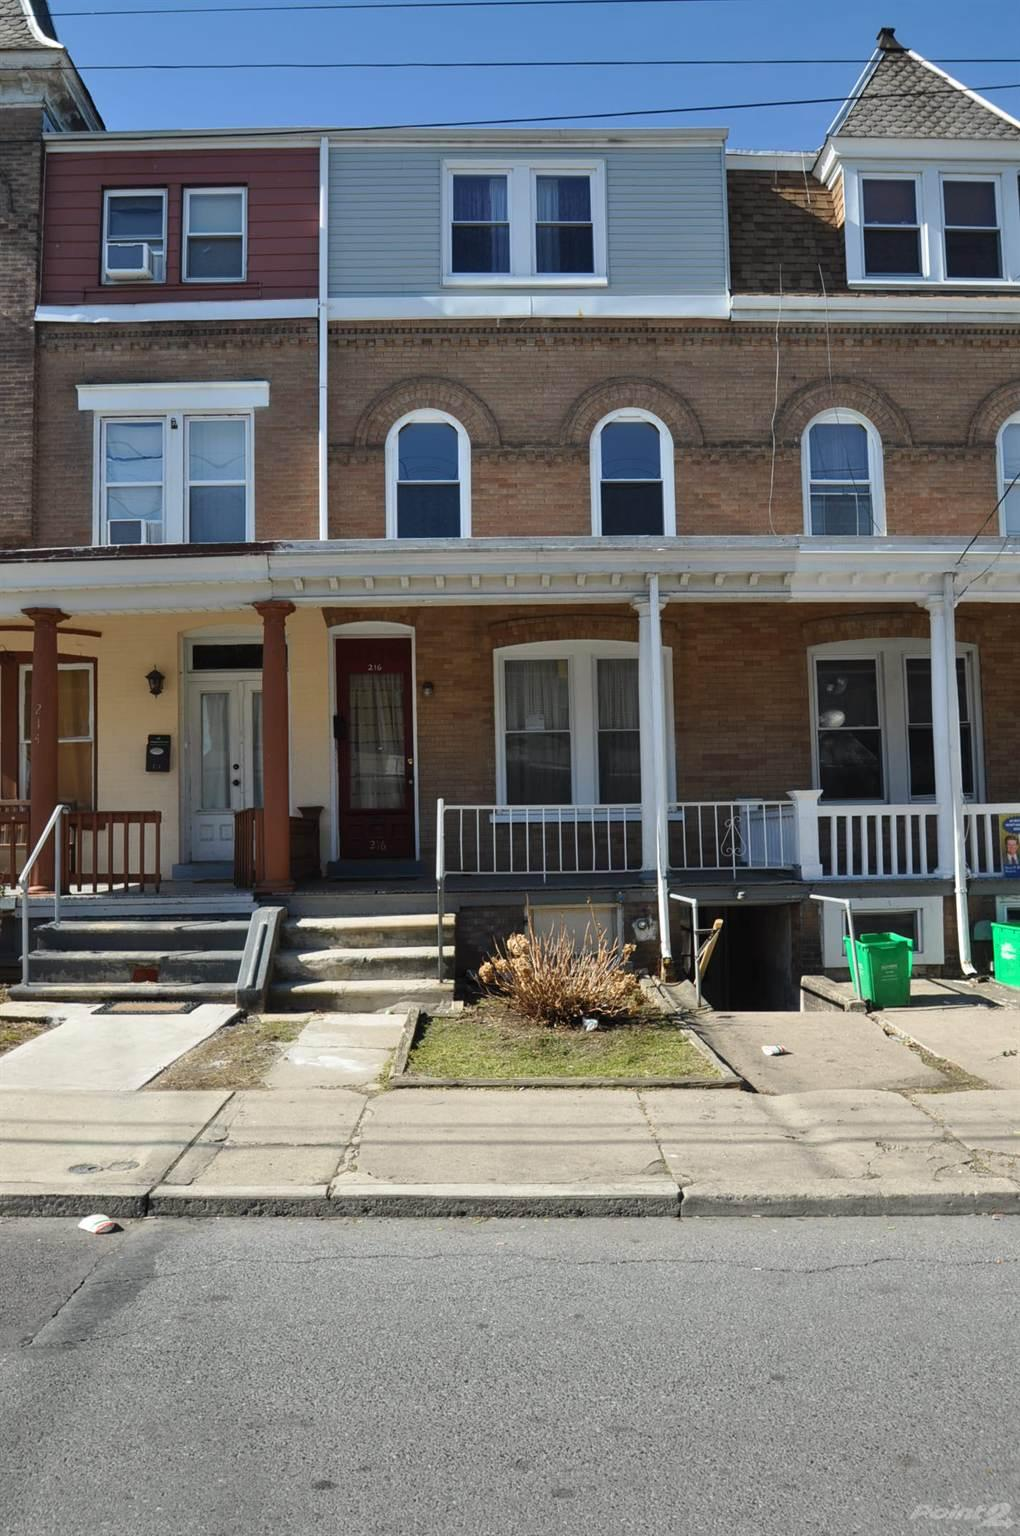 216 N Madison St Allentown Pa 18102 5 Bed 2 Bath Single Family